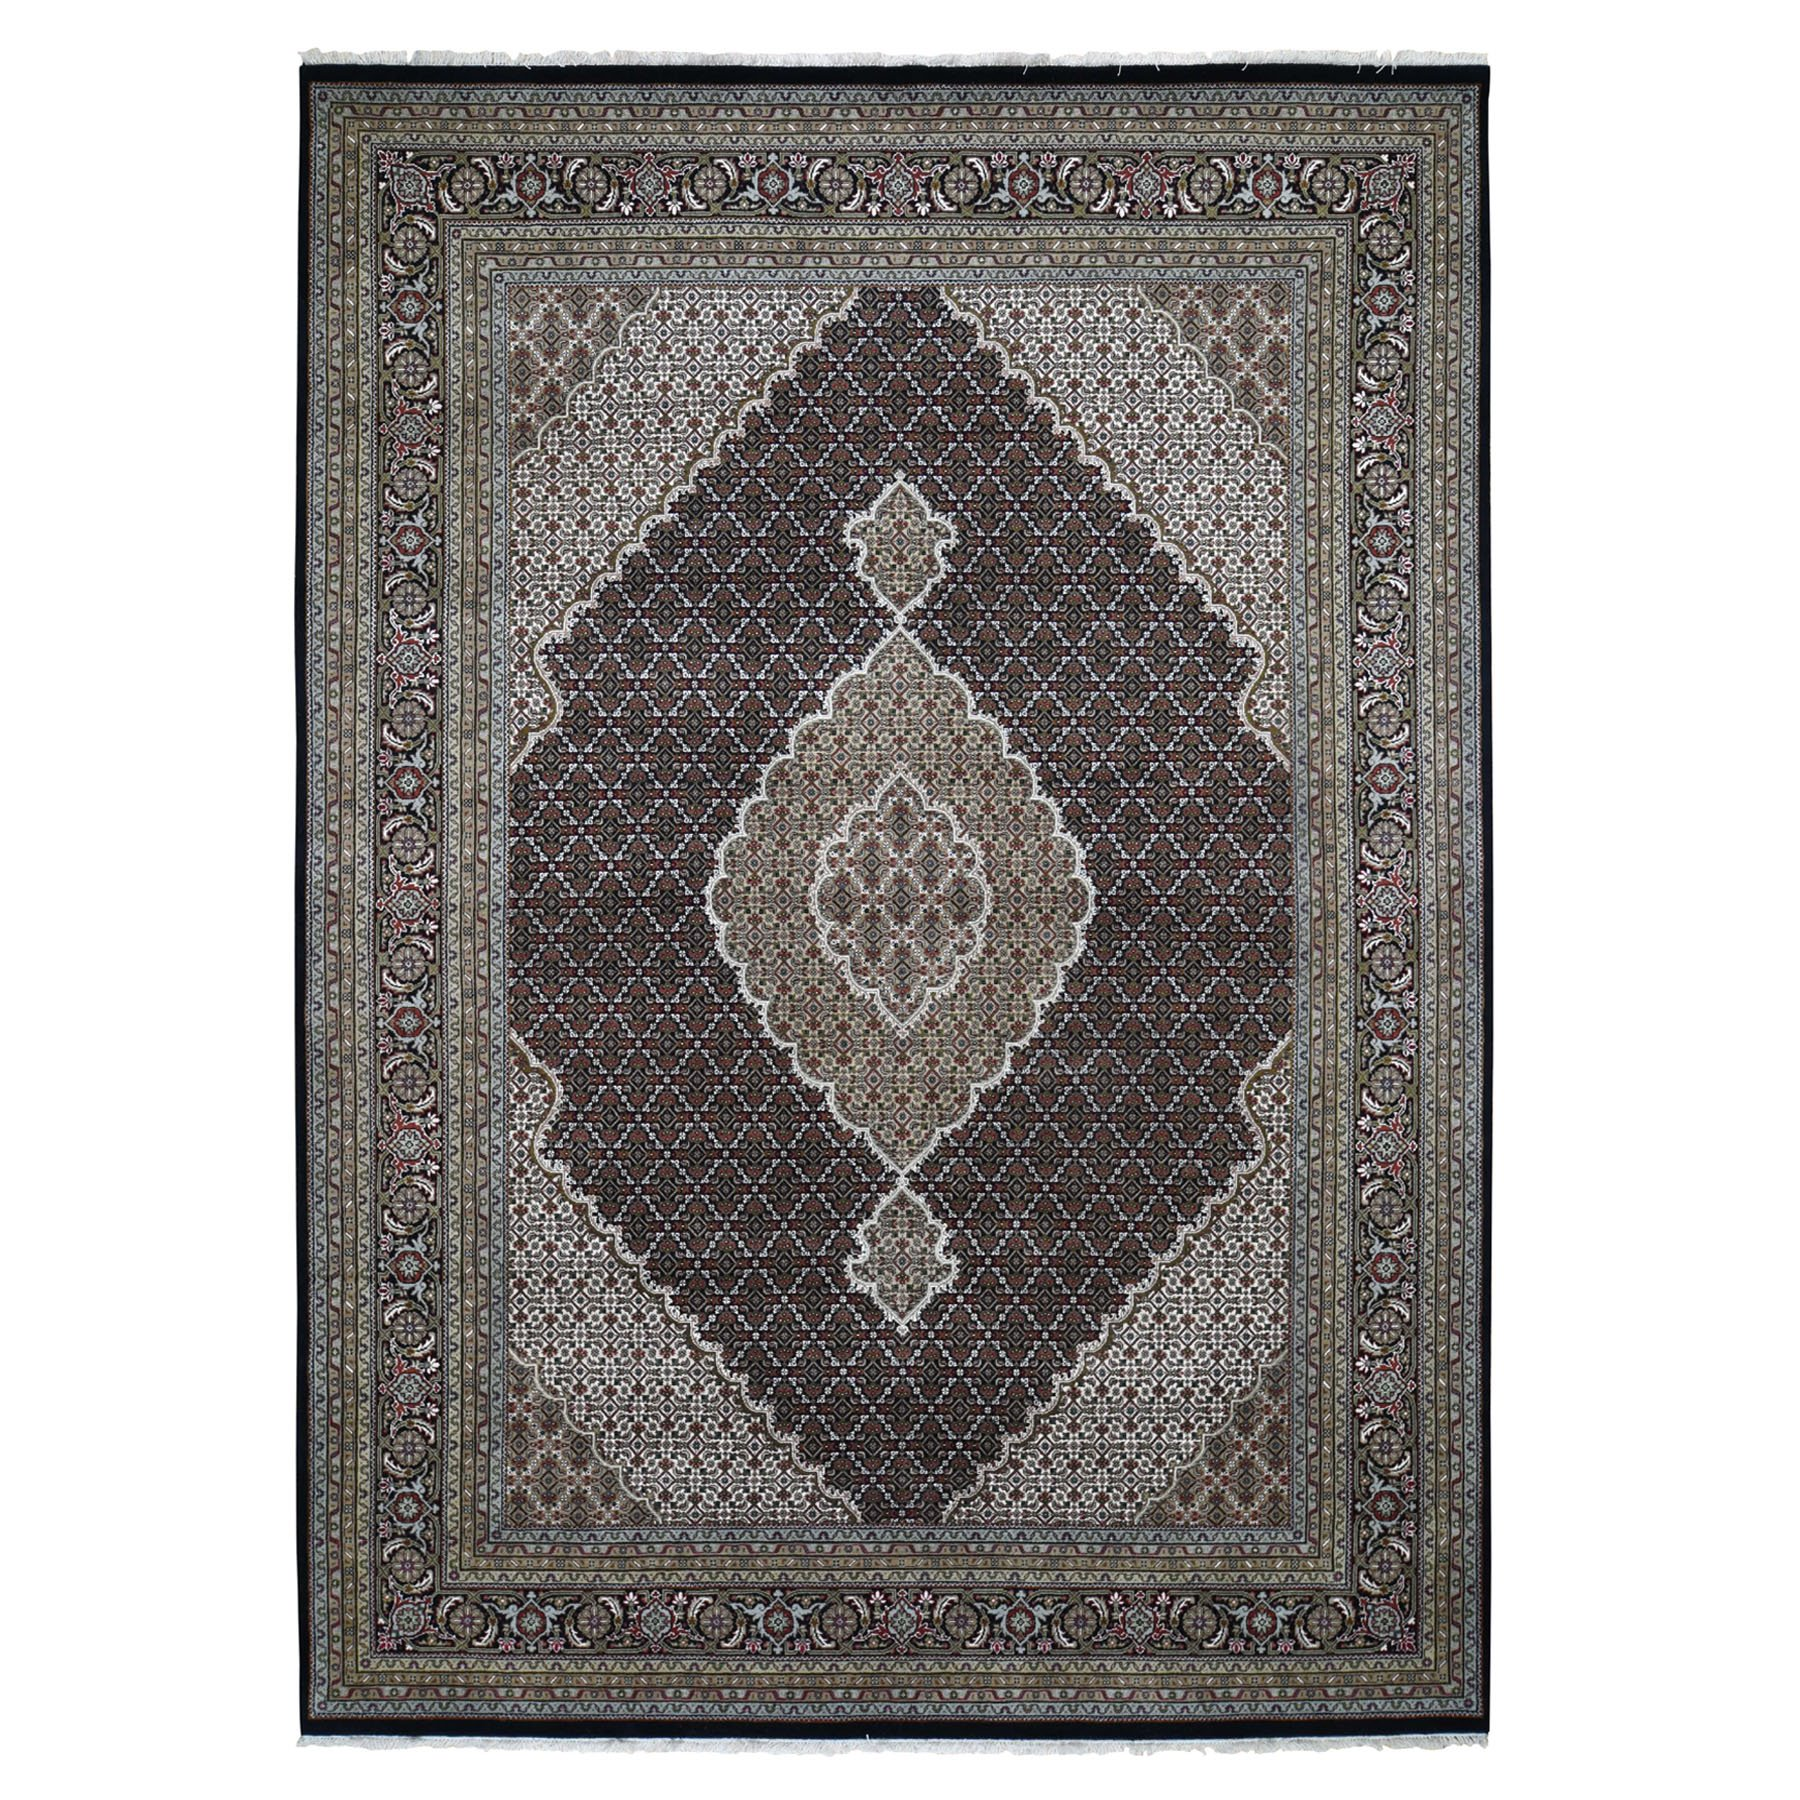 Pirniakan Collection Hand Knotted Black Rug No: 0196306